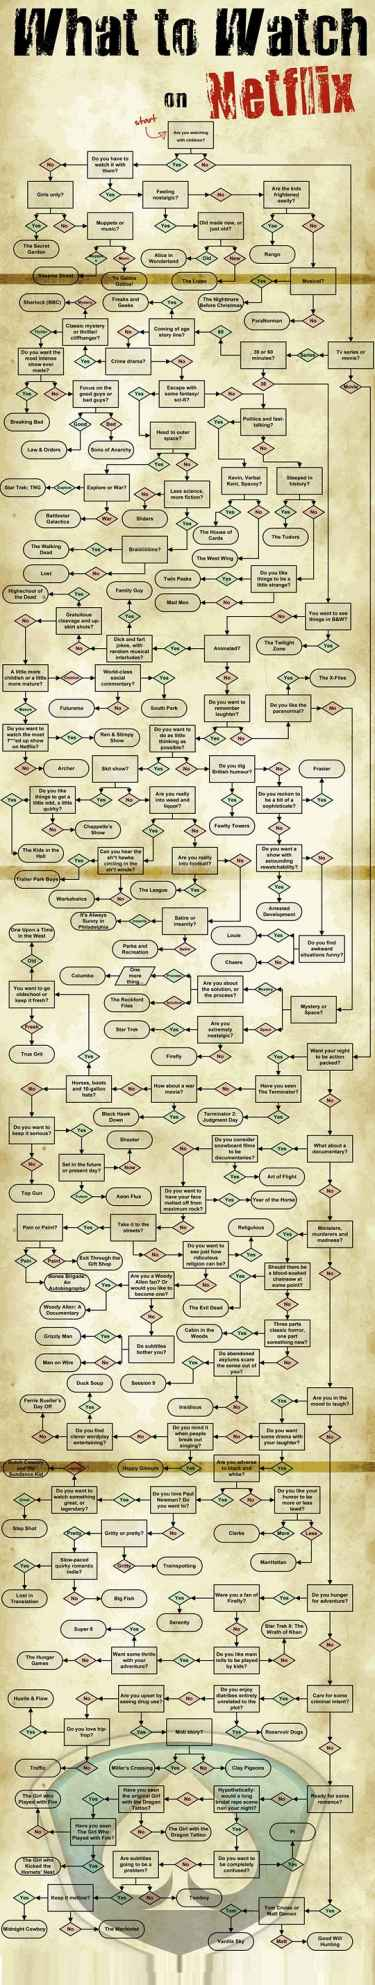 What to watch on Netflix flow chart